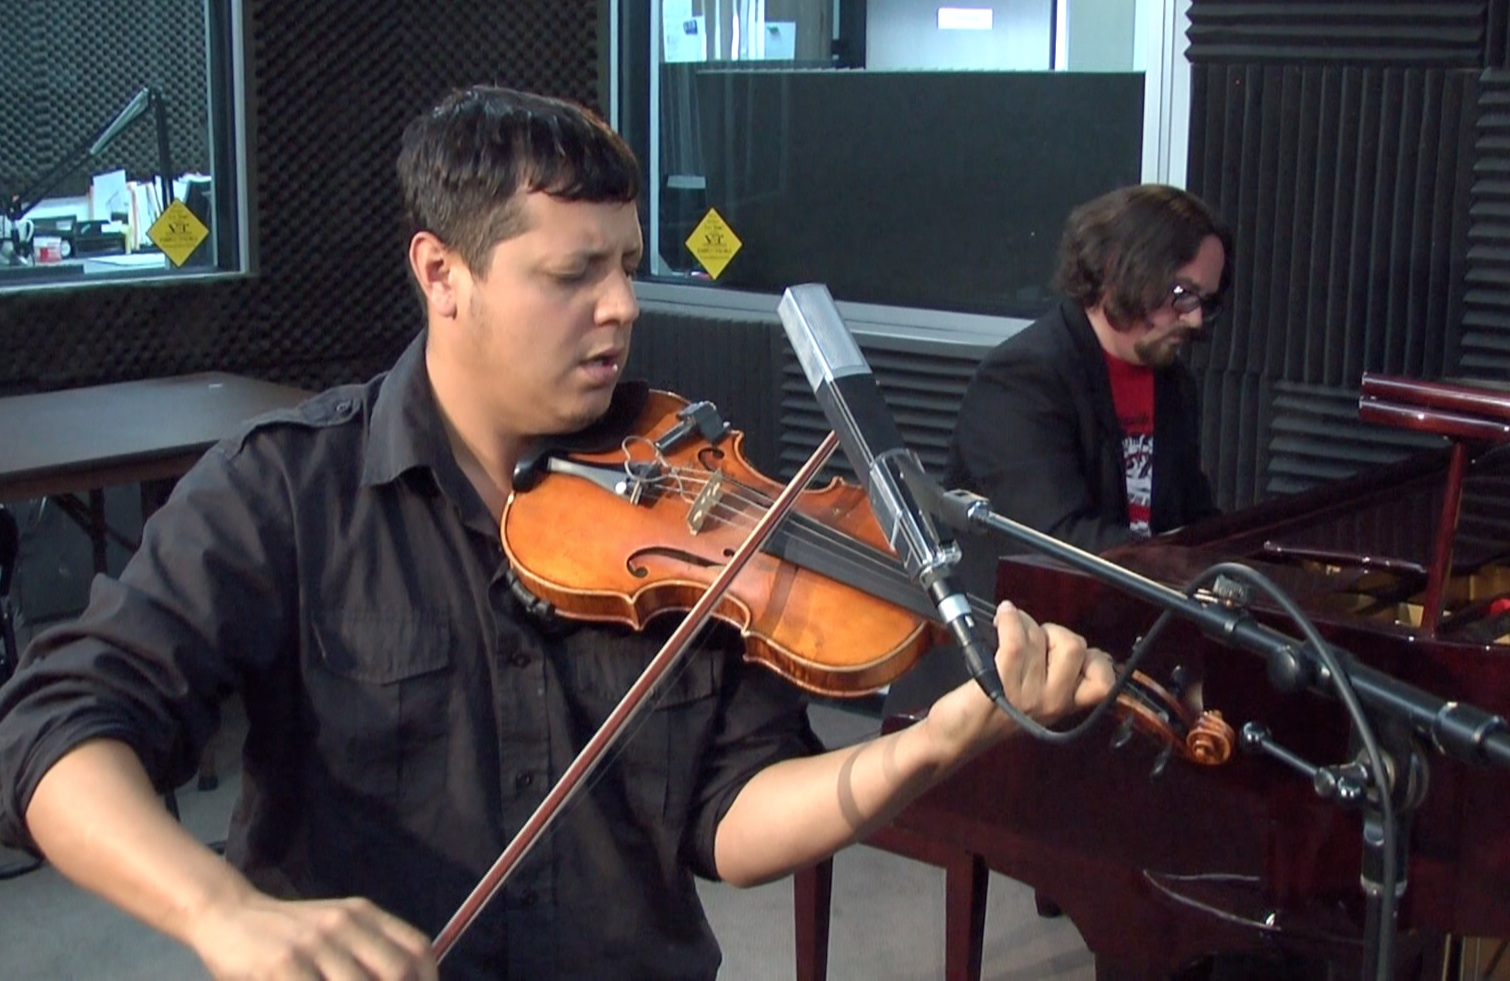 Kvpr Valley Public Radio Performance with Patrick Contreras and Jay Smith